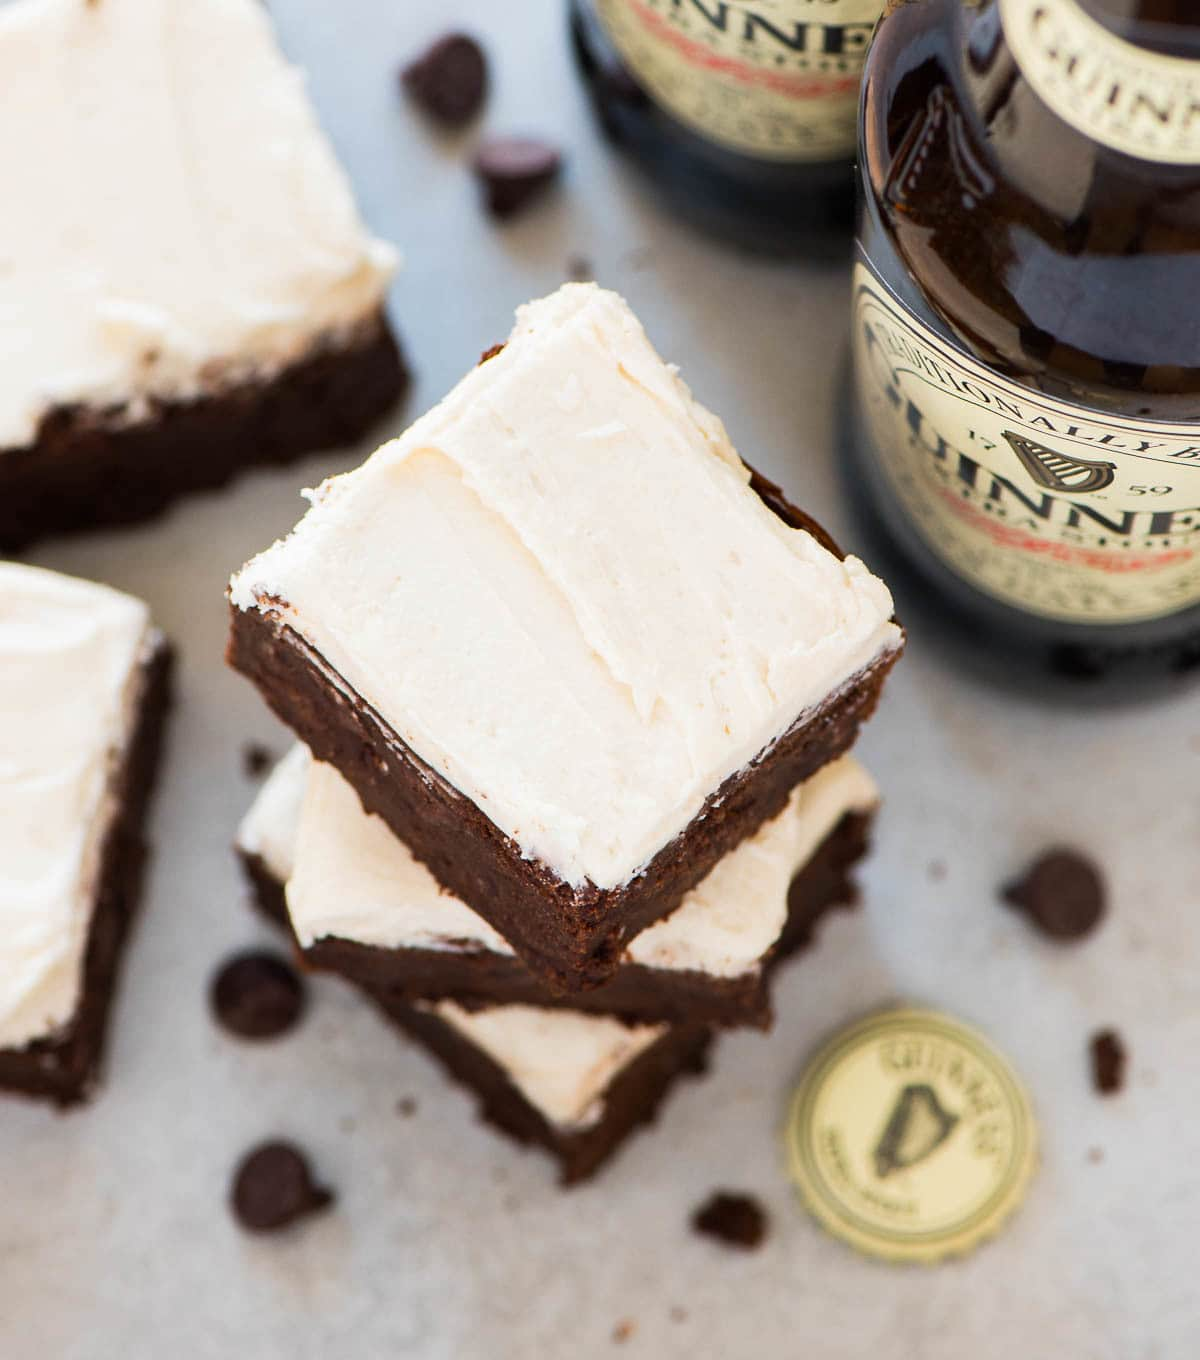 Guinness Brownies – Super moist, chewy brownies topped with creamy Guinness frosting. Decadent, gooey, and so easy to make! Recipe at wellplated.com | @wellplated